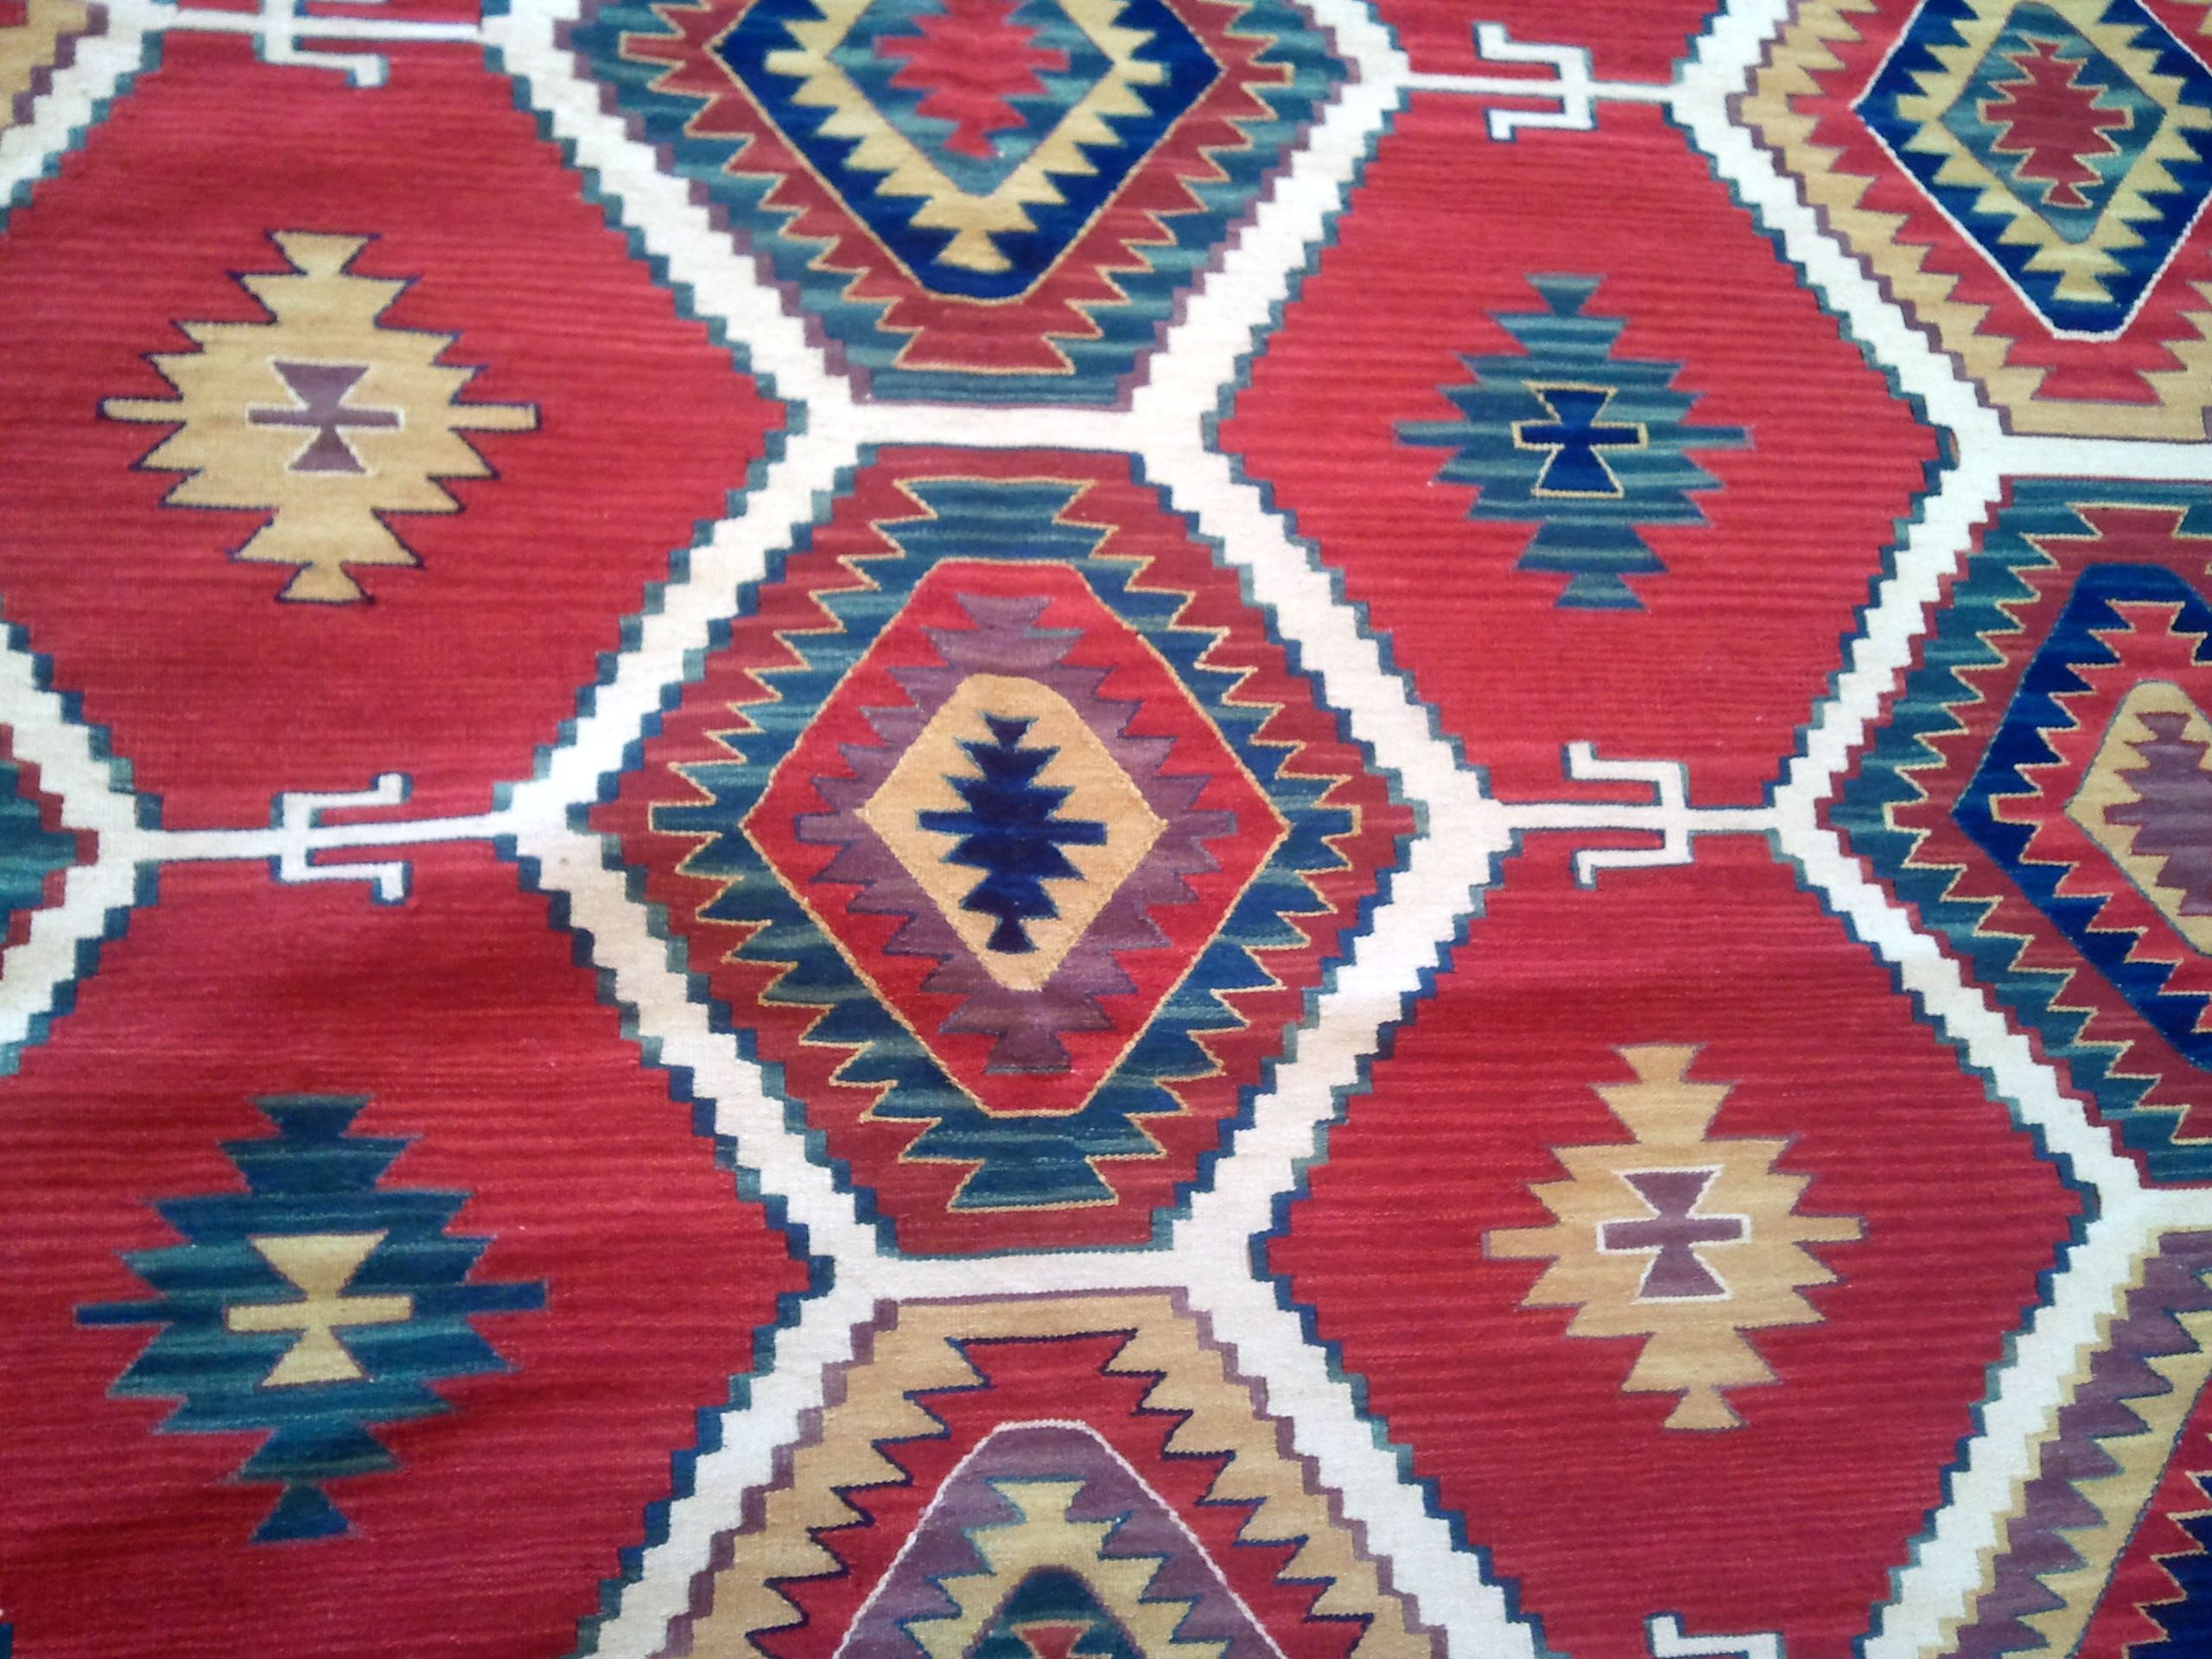 Vibrant Kilim Red And Blue Flatweave Rug 8x10